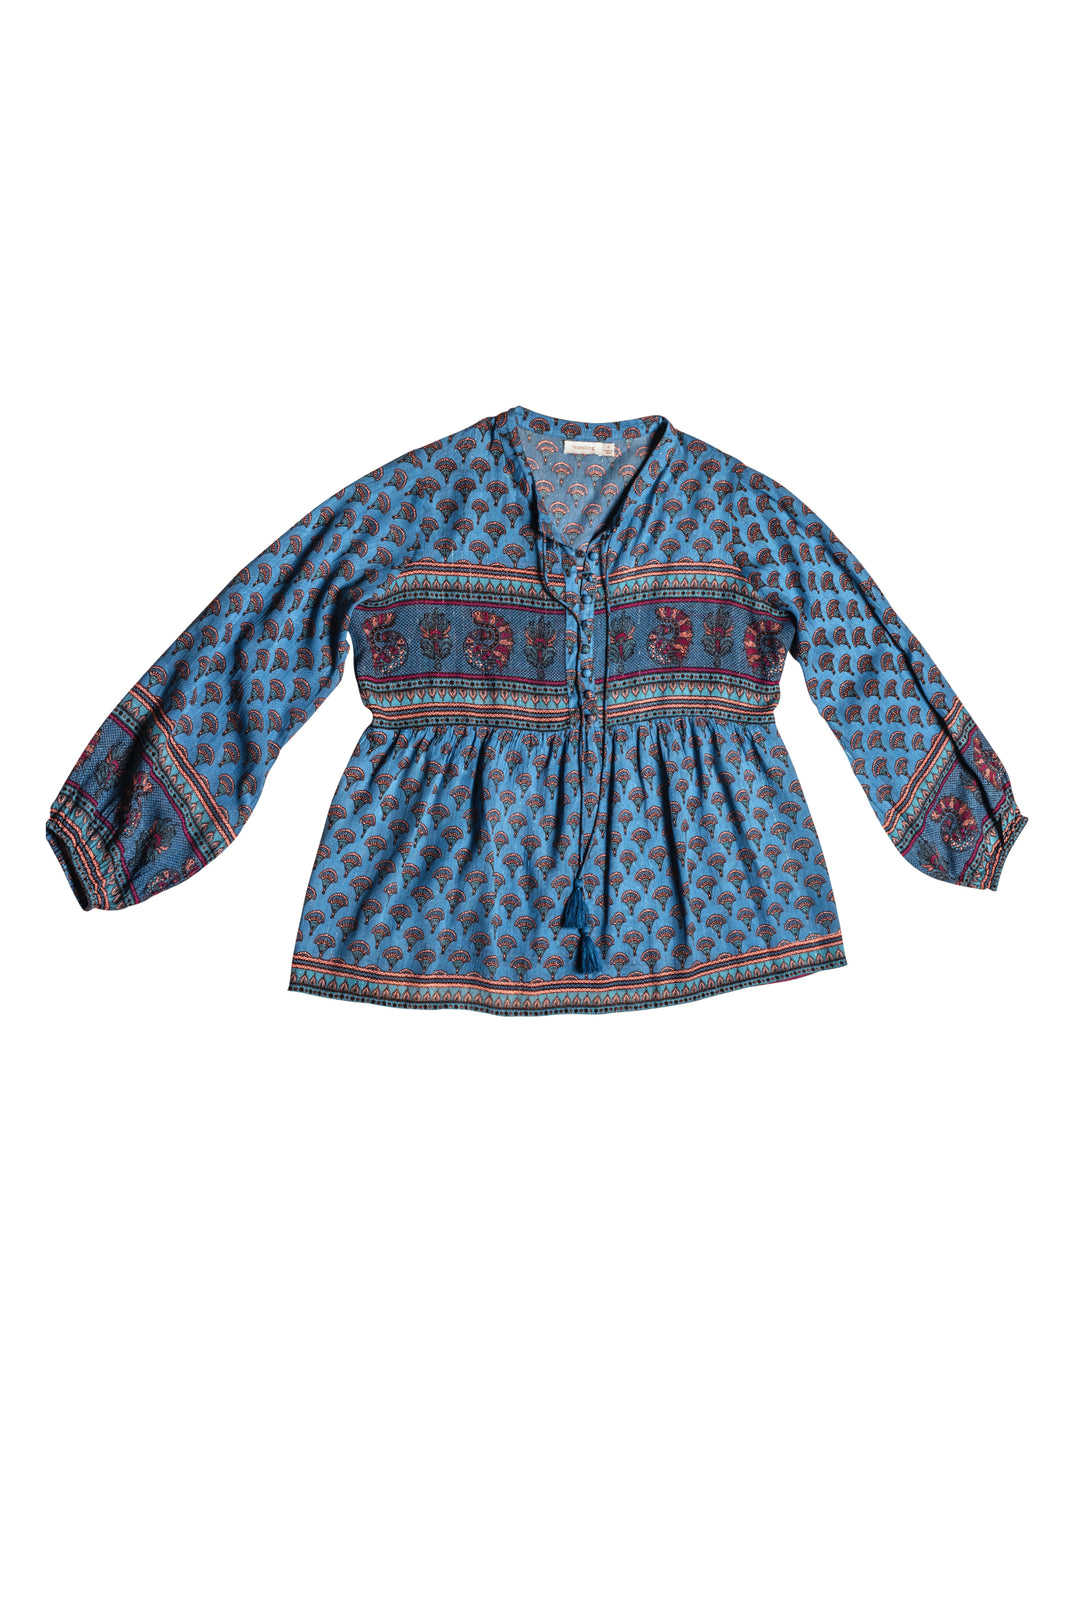 lurex gauze blue peacock folk blouse